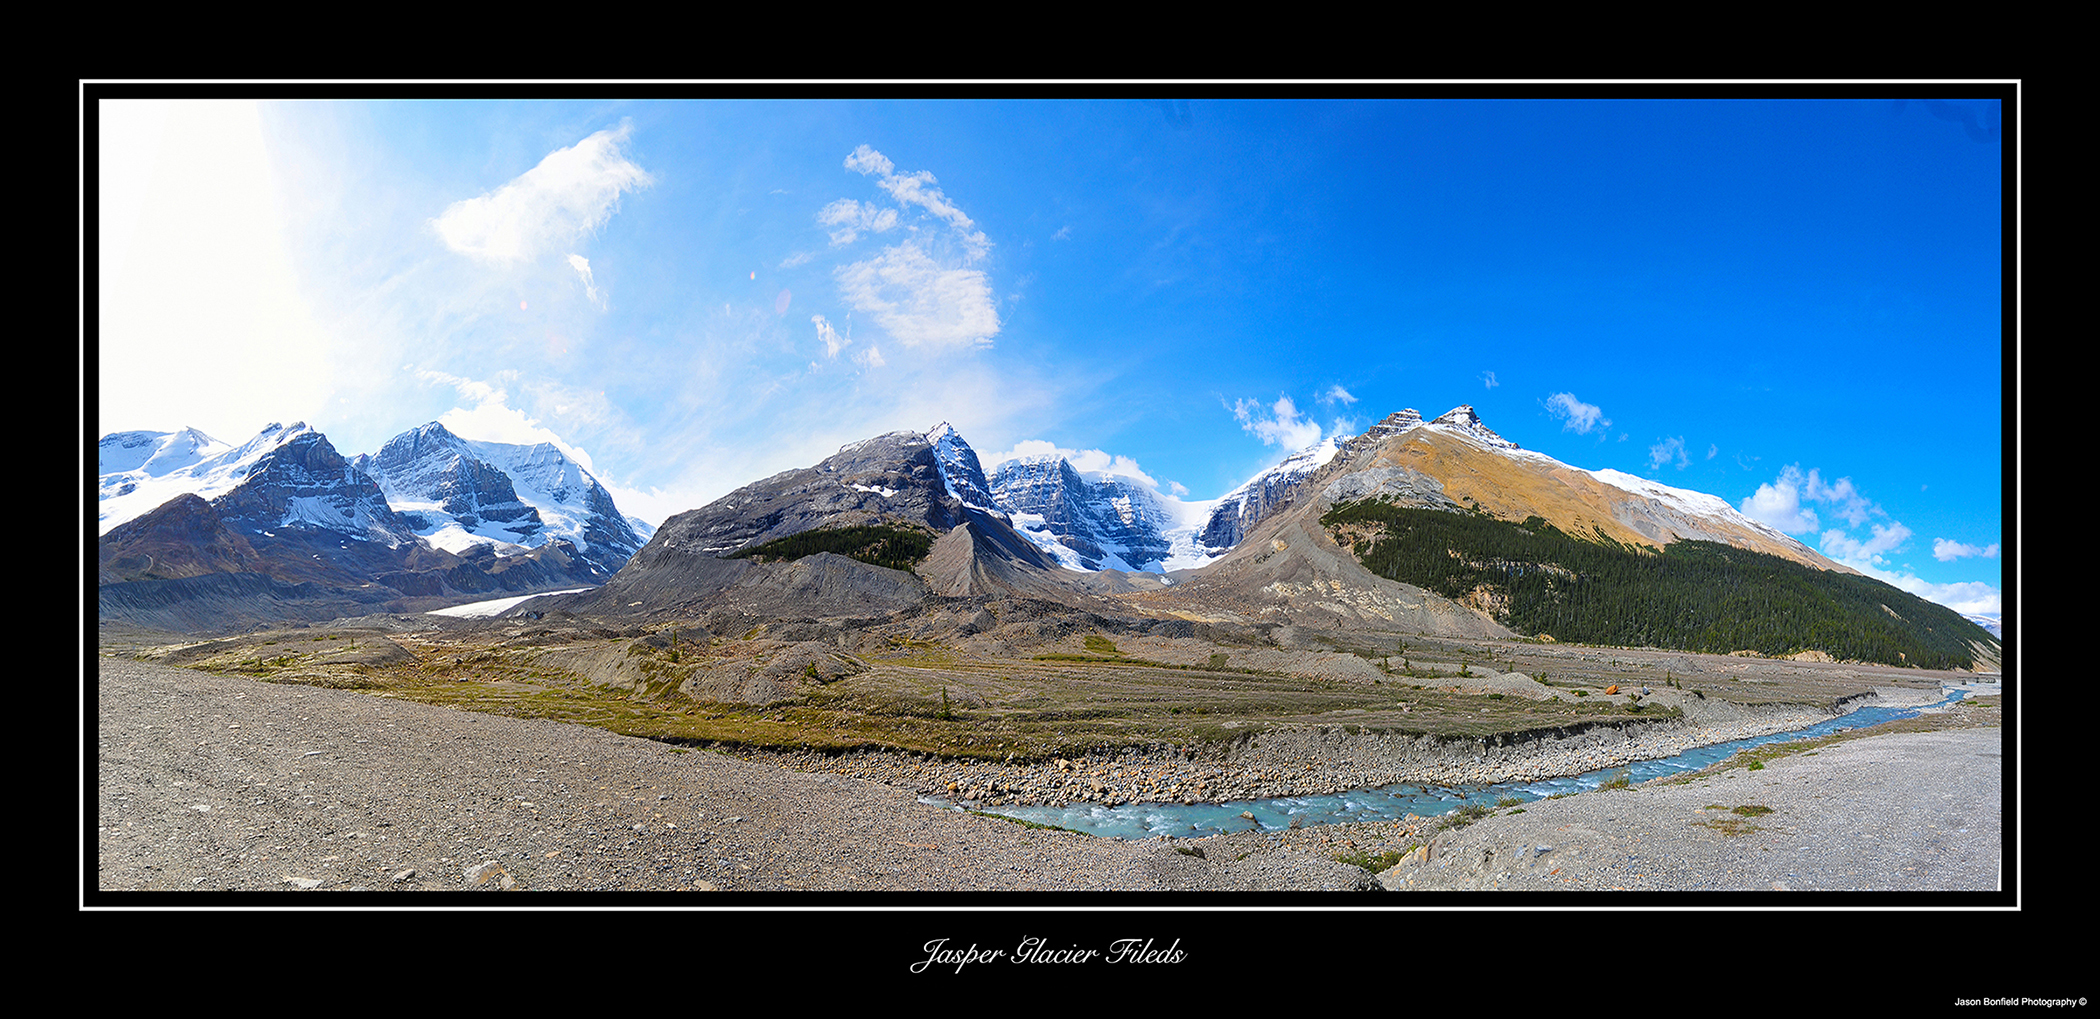 Panoramic landscape picture of mountains, glaciers, a river and blue sky in Jasper National Park in Alberta, Canada.